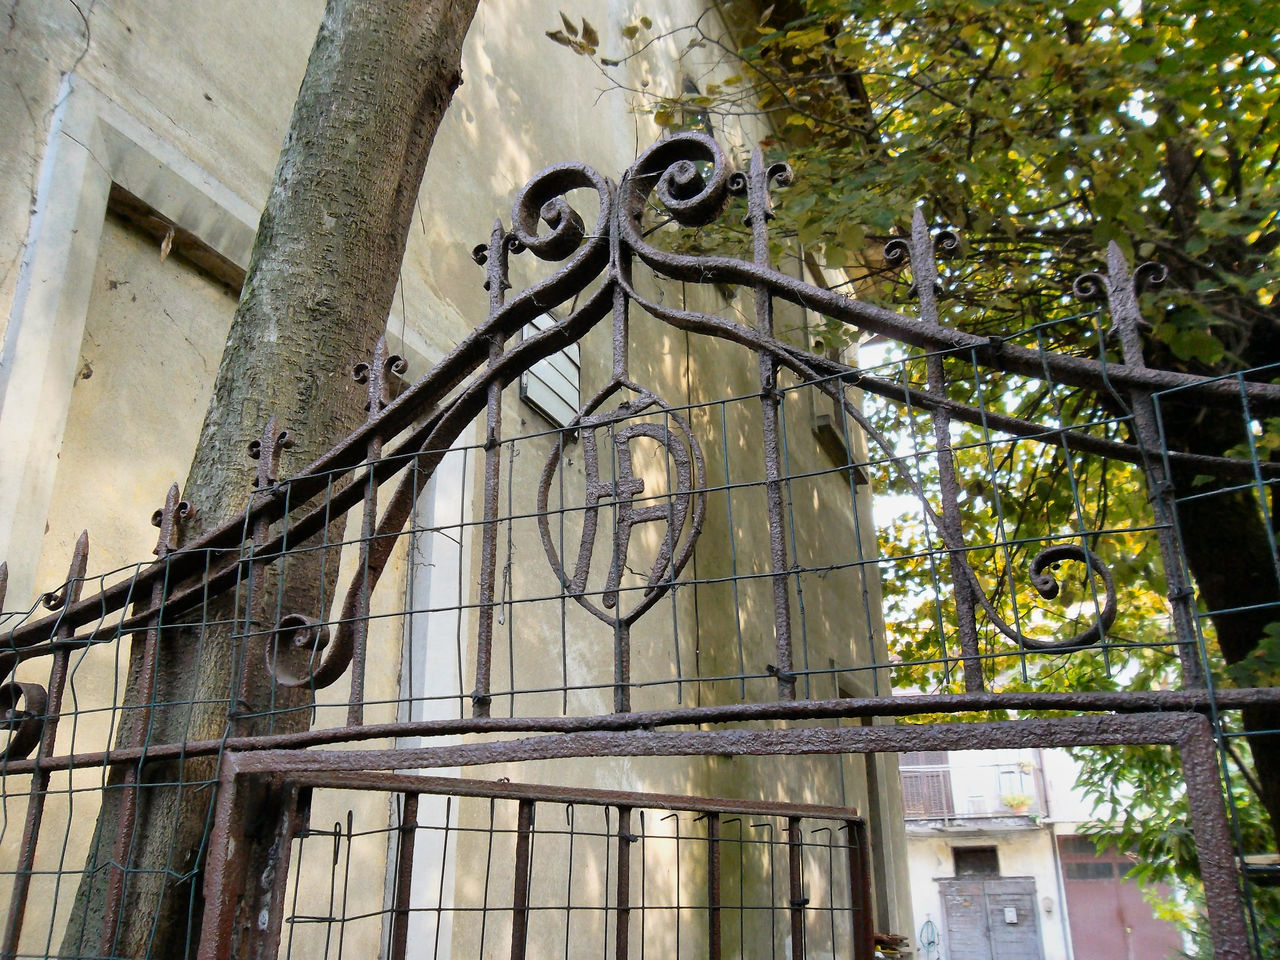 Architecture Building Exterior Built Structure Day Nature No People Outdoors Rampicante Rusted Metal  Secret Place Stone Lions Tree Wrought Iron Gate